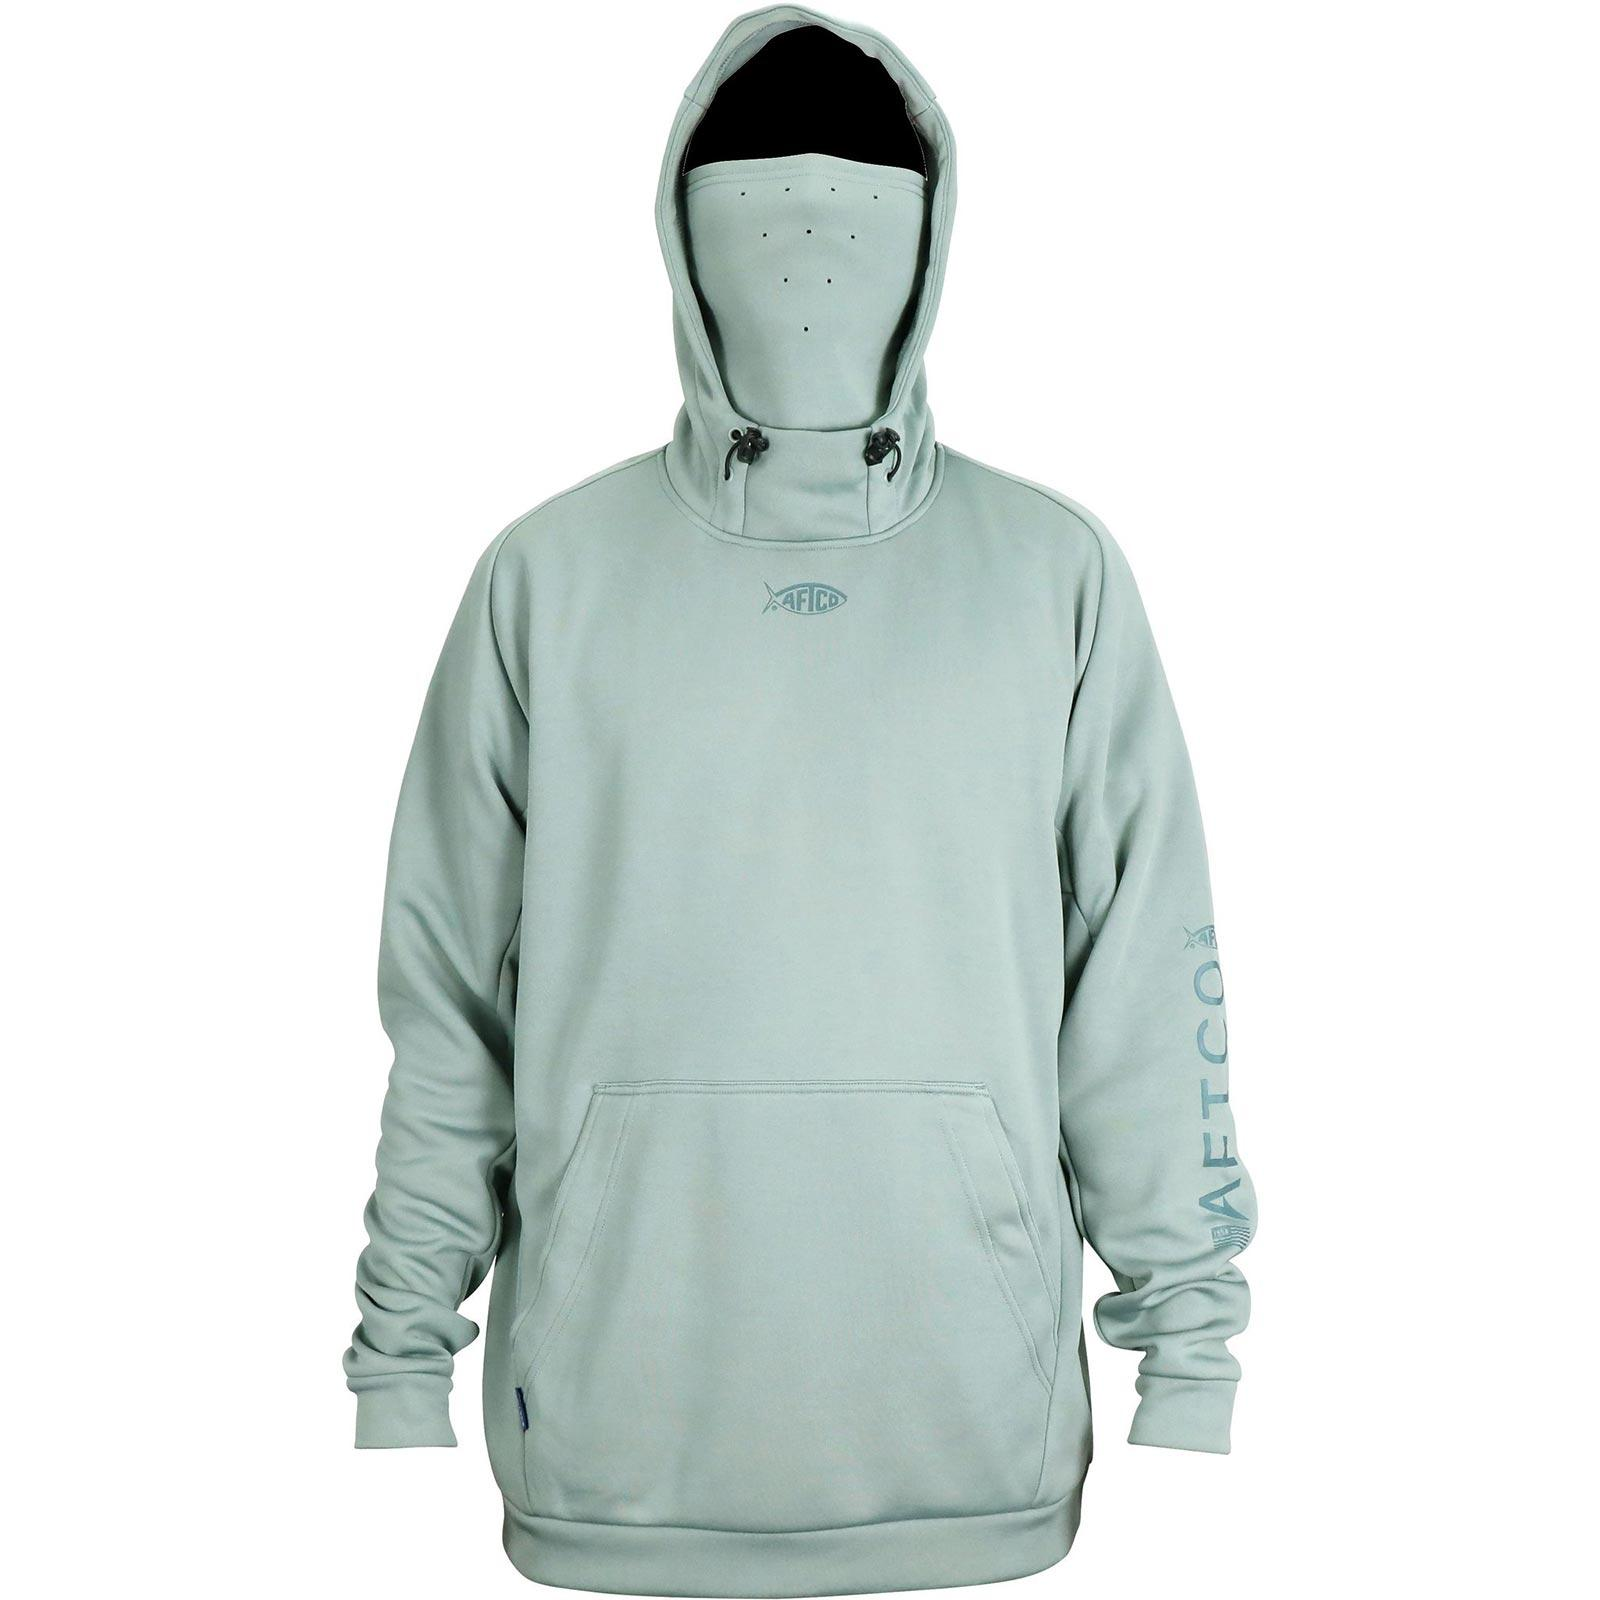 AFTCO Men's Reaper Technical Hoodie Sweatshirt